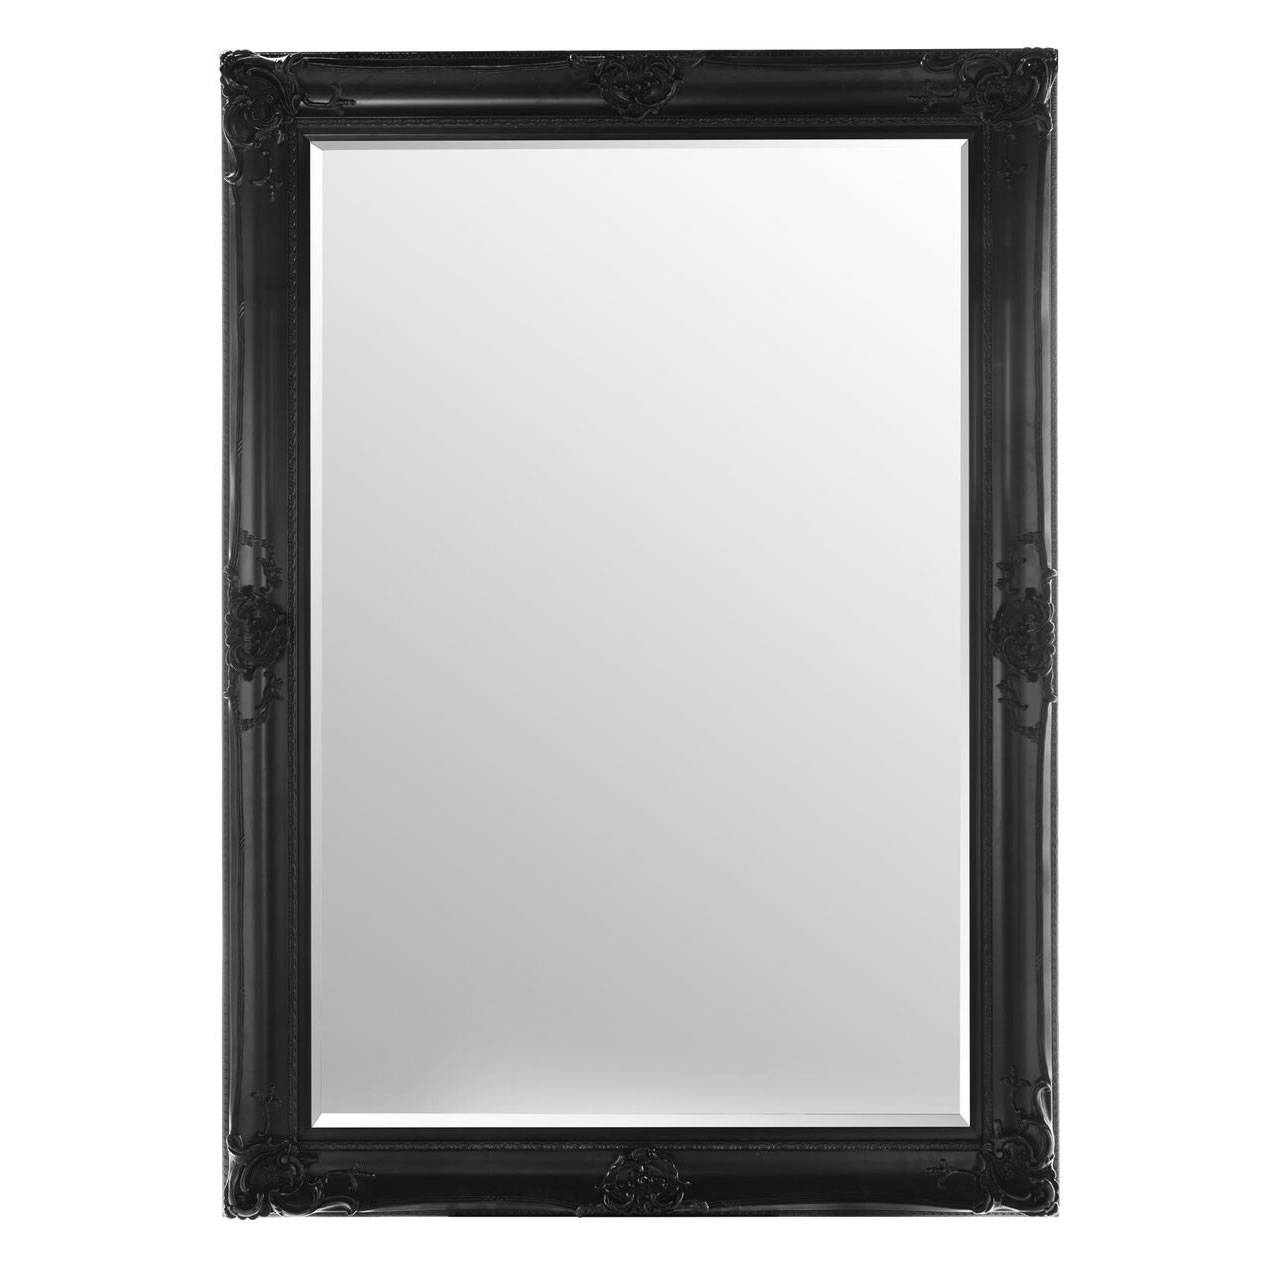 Mirror : Shabby Chic Mirrors Wonderful Large Black Ornate Mirror With Regard To Large Black Ornate Mirrors (View 3 of 15)